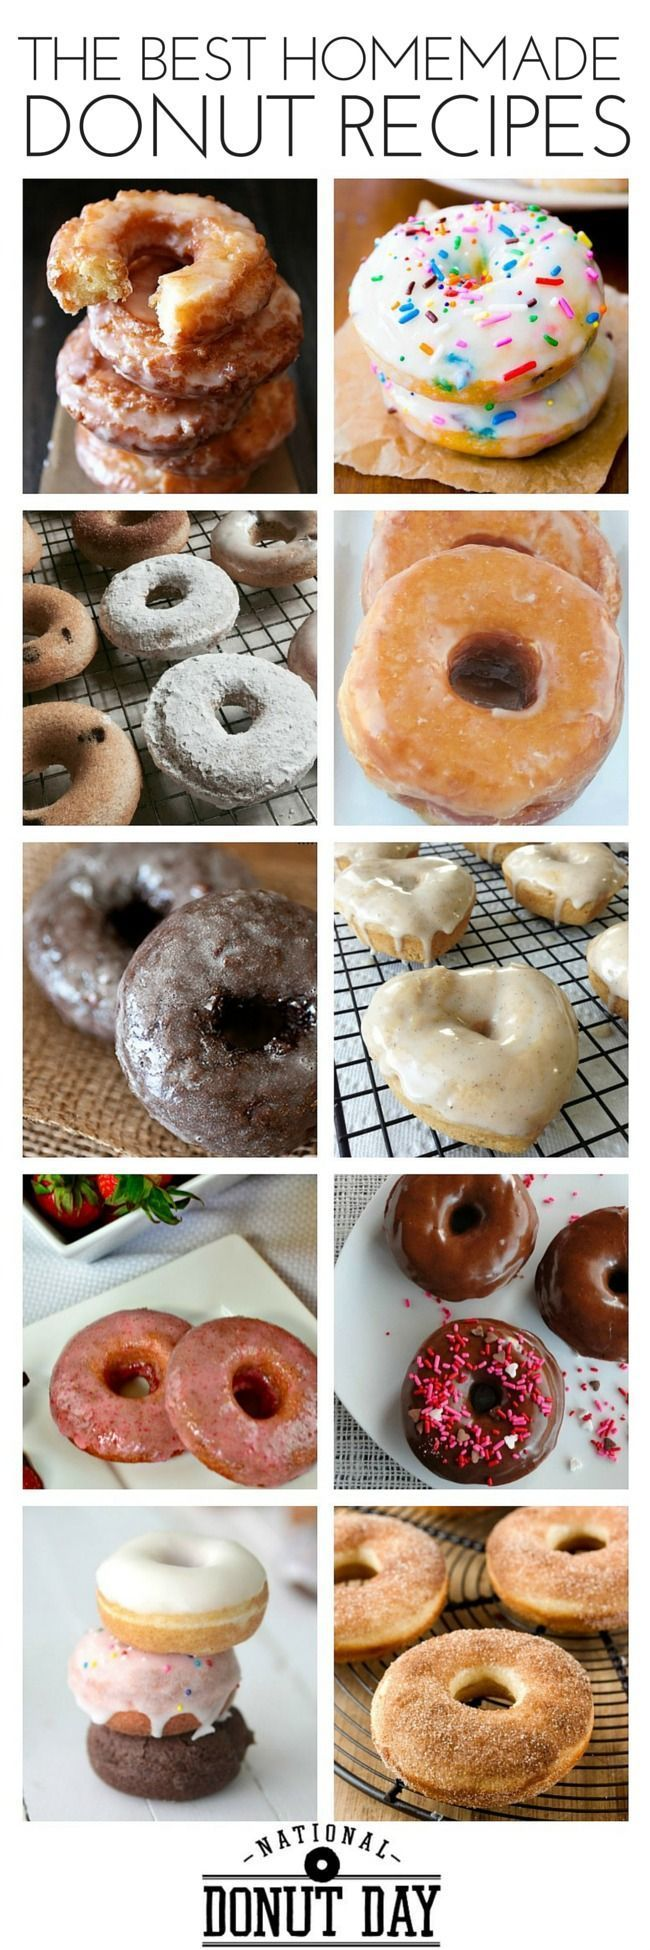 National Donut Day: the Best Make Your Own Donut Recipes   Make it donut day every day with homemade donuts!